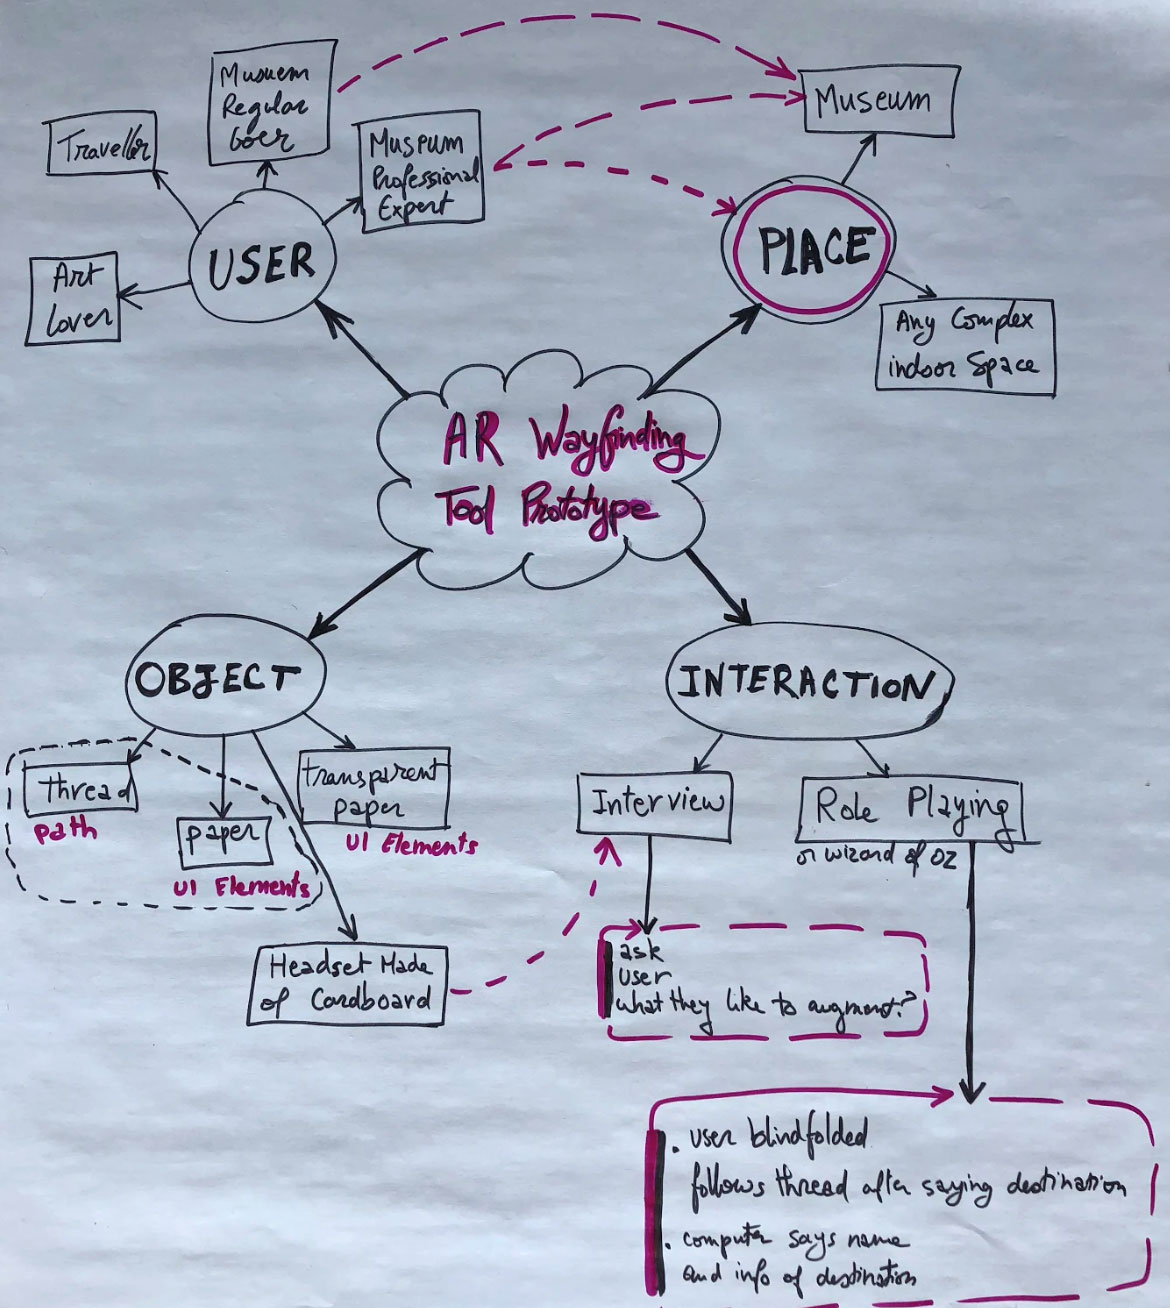 Mind mapping the prototype creation: Definding the 4 elements of the prototype:USER / PLACE / OBJECT /INTERACTION